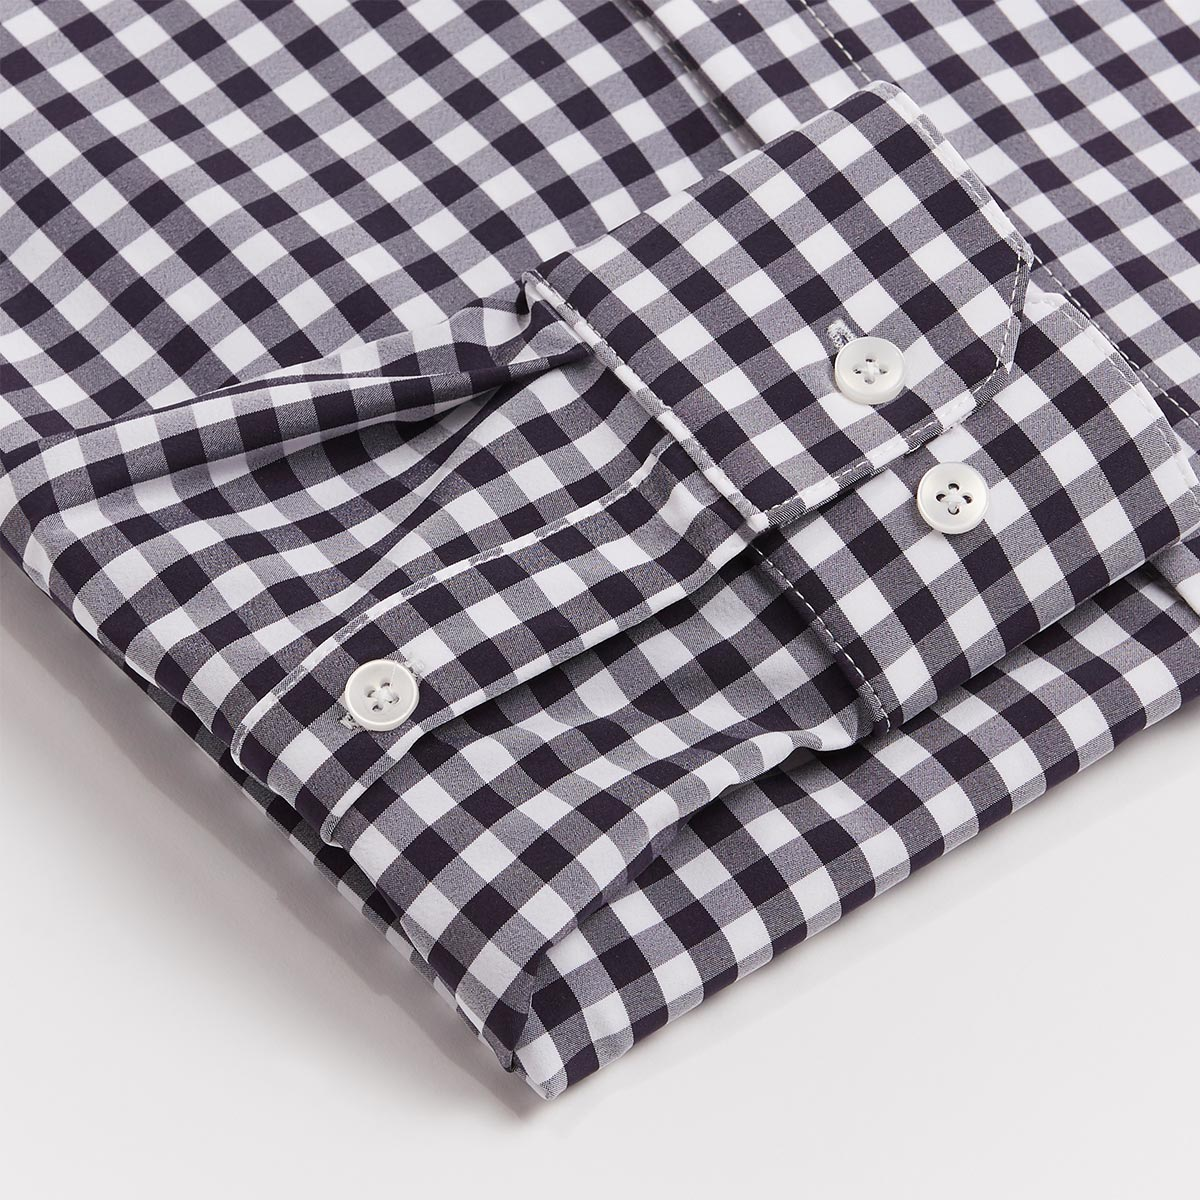 Black and white checkered collared work shirt neatly folded with sleeve in foreground to show fabric details.